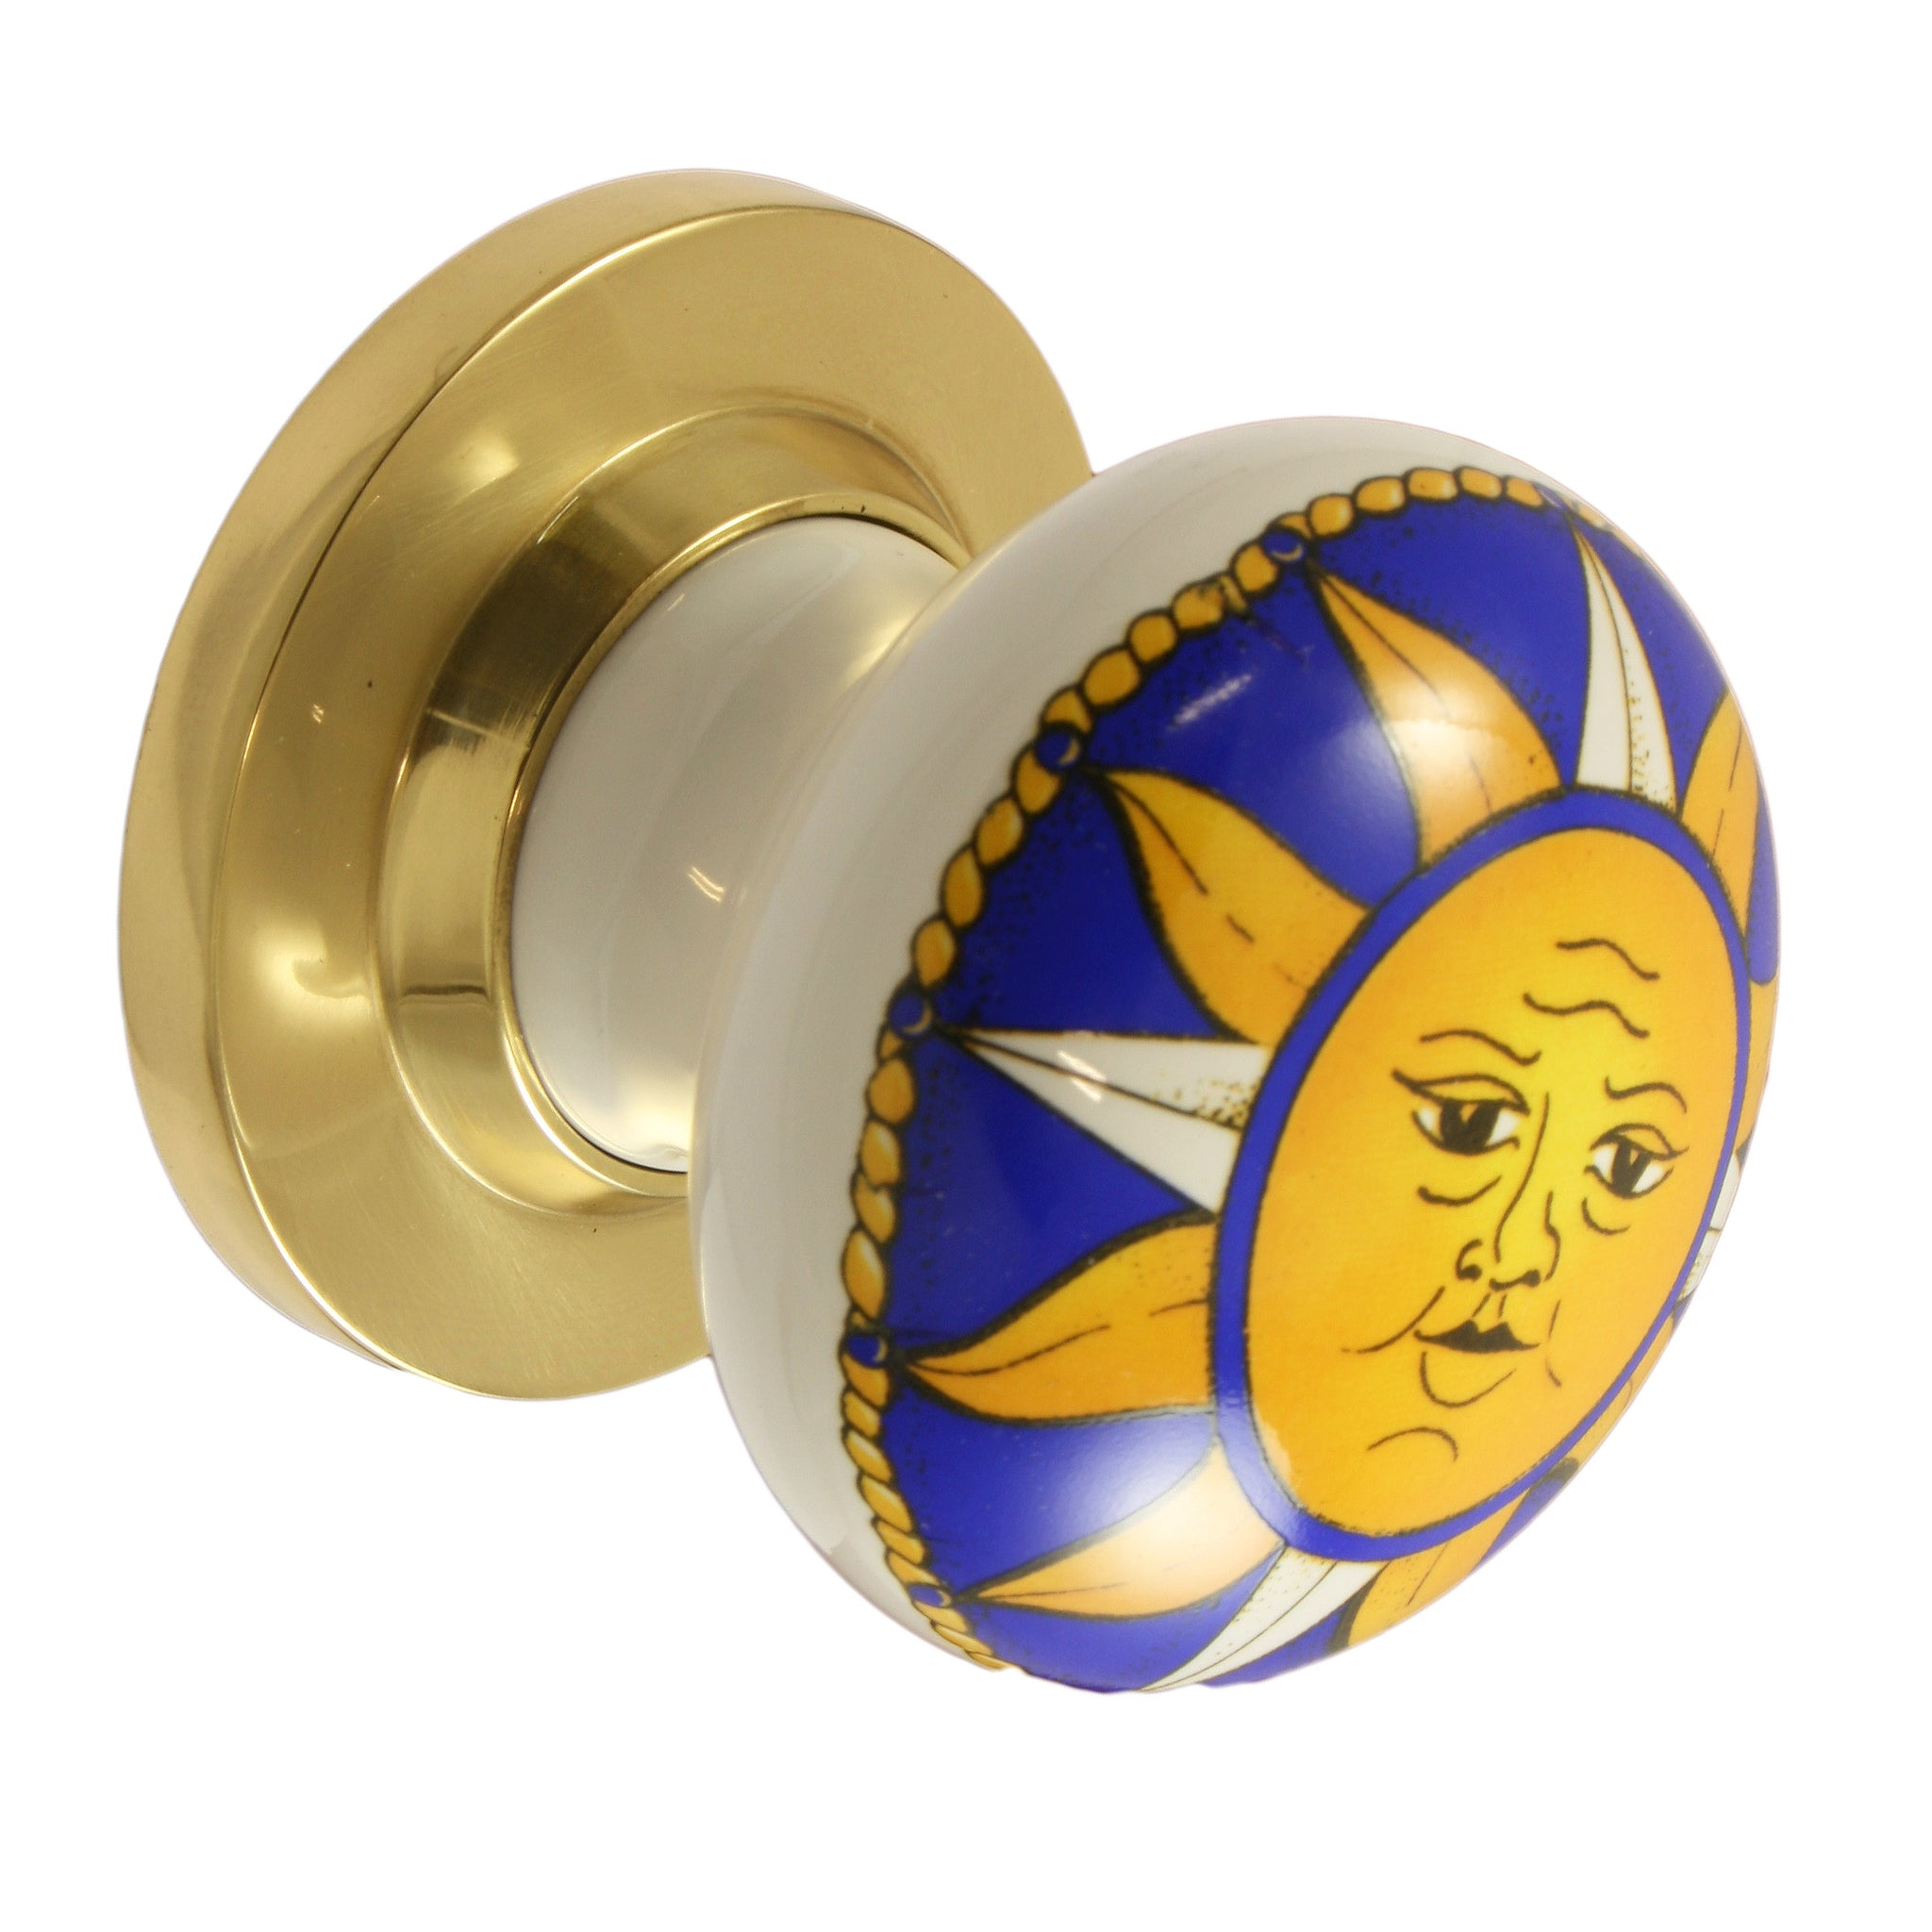 Pair of Galaxy / Brass Ceramic Mortice Door Knobs